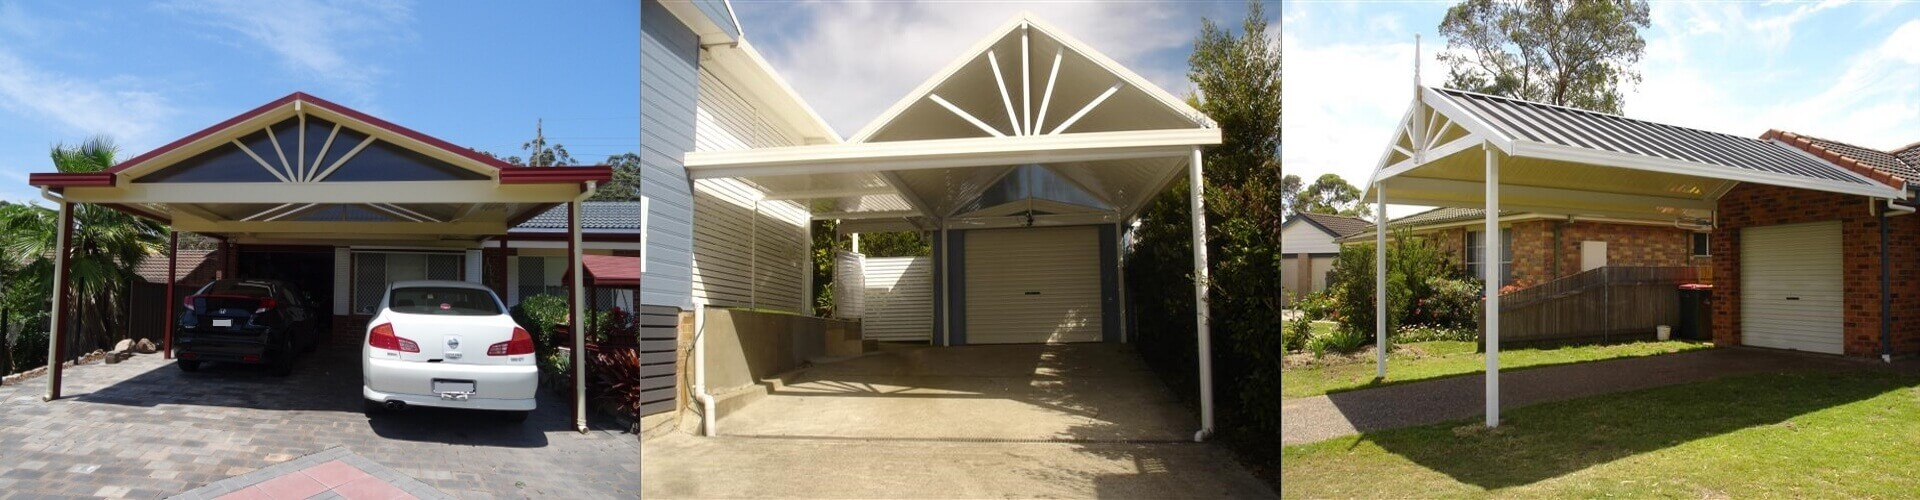 Covers And Shelters : Carport covers and shelters walker home improvements